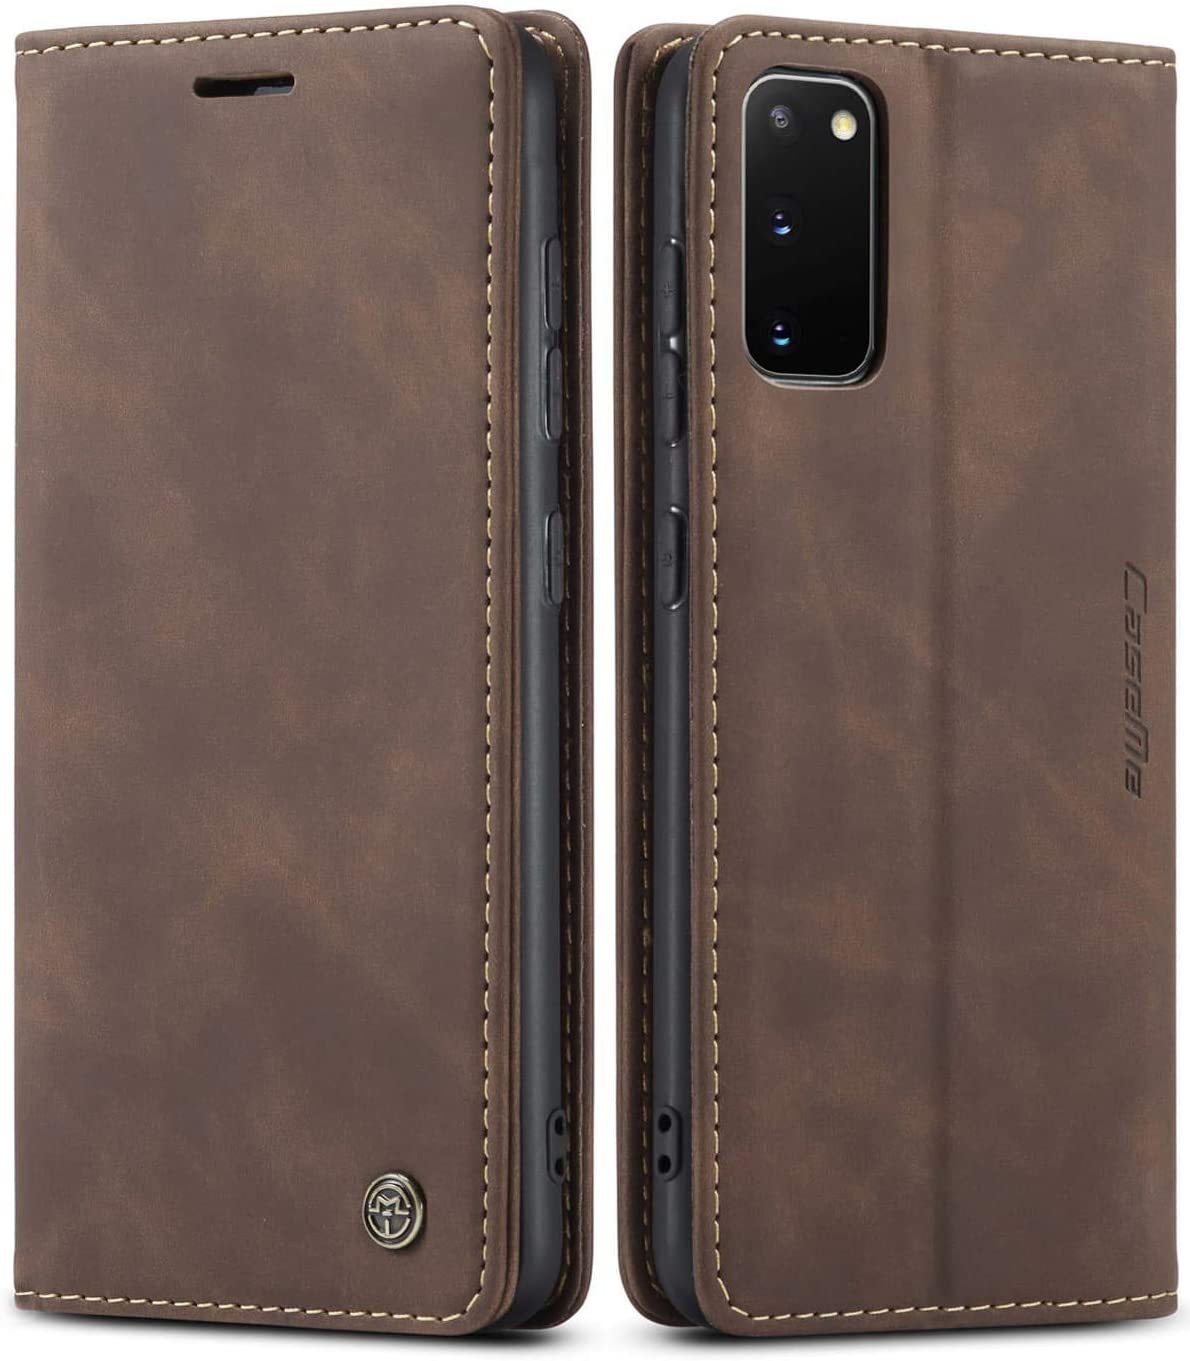 SINIANL Samsung Galaxy S20 Case, Galaxy S20 Leather Case, Vintage Wallet Case Book Folding Flip Case with Kickstand Card Holders Slots Magnetic Closure Protective Cover for Galaxy S20 Coffee